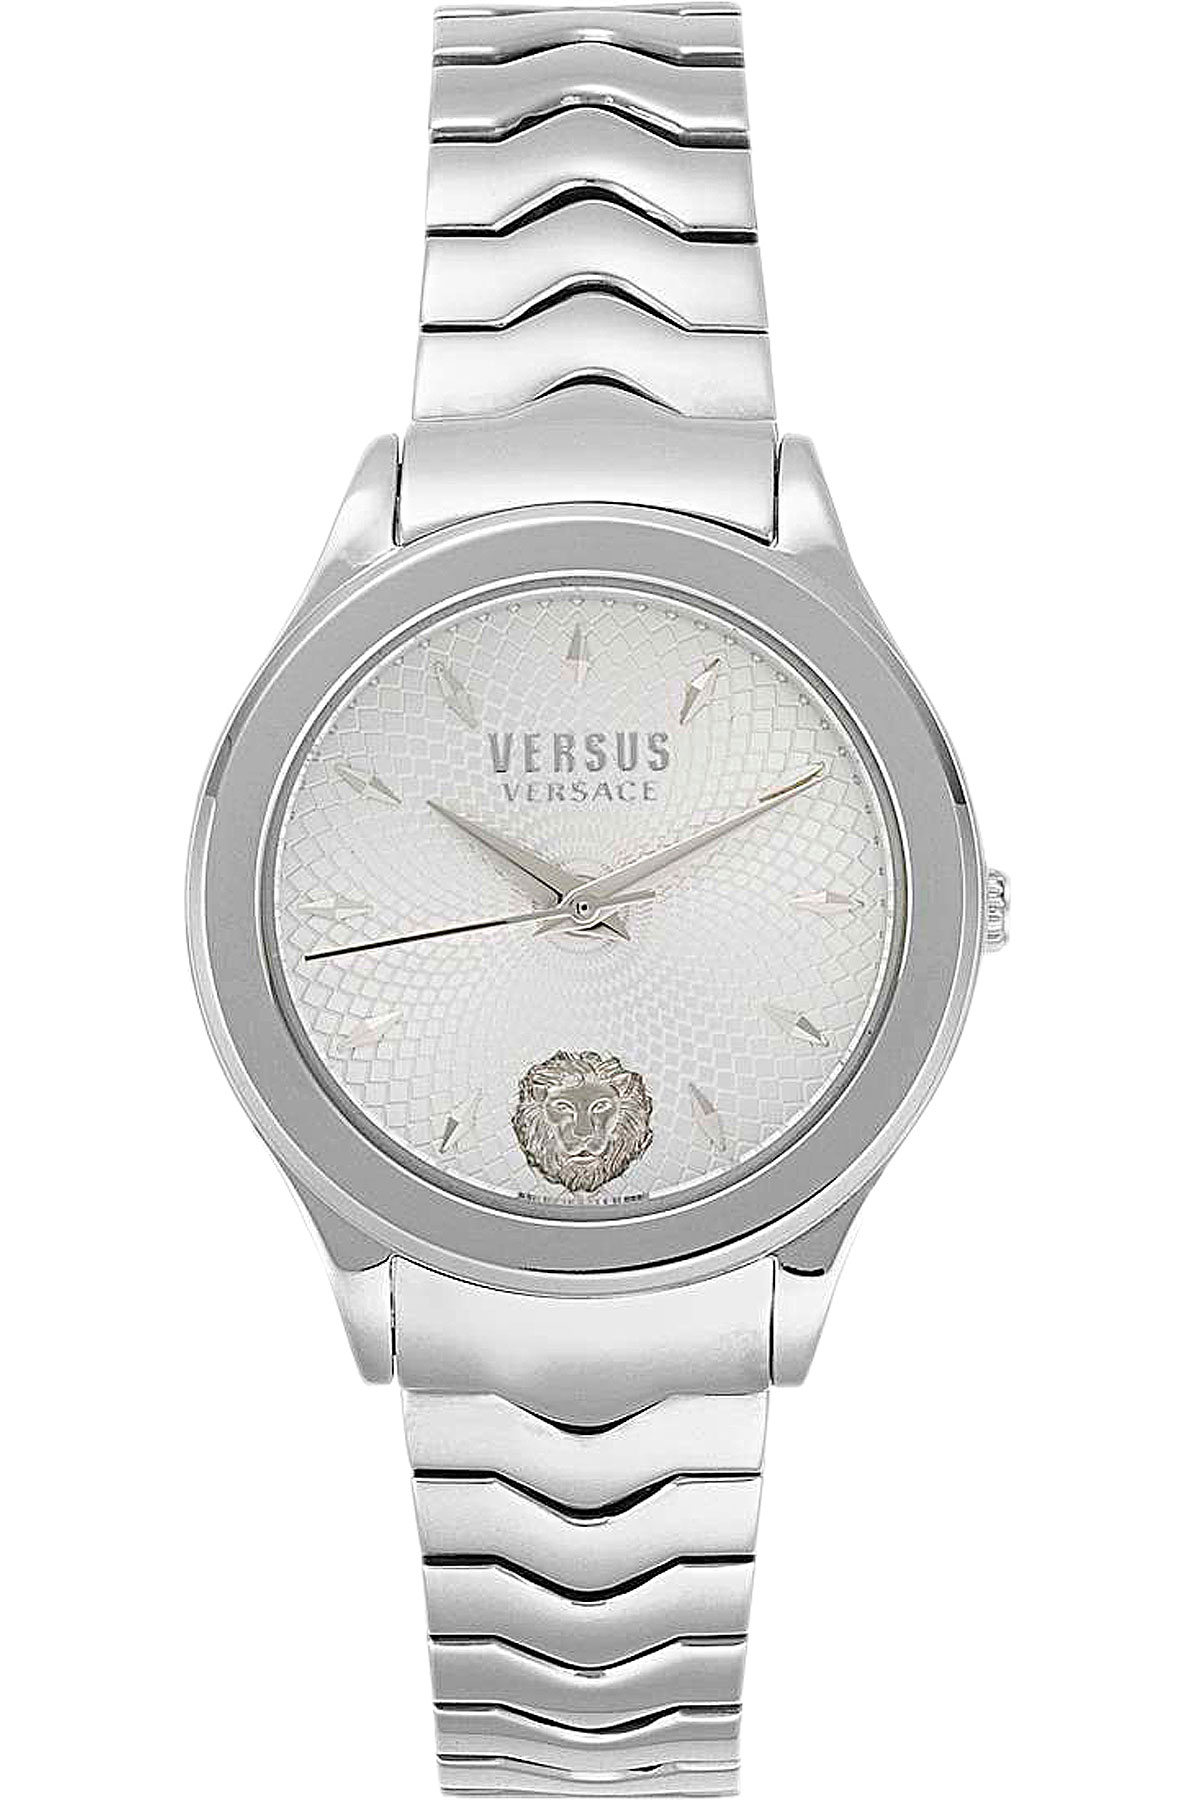 Versace_Watch_for_Women_On_Sale,_Silver,_Stainless_Steel,_2019